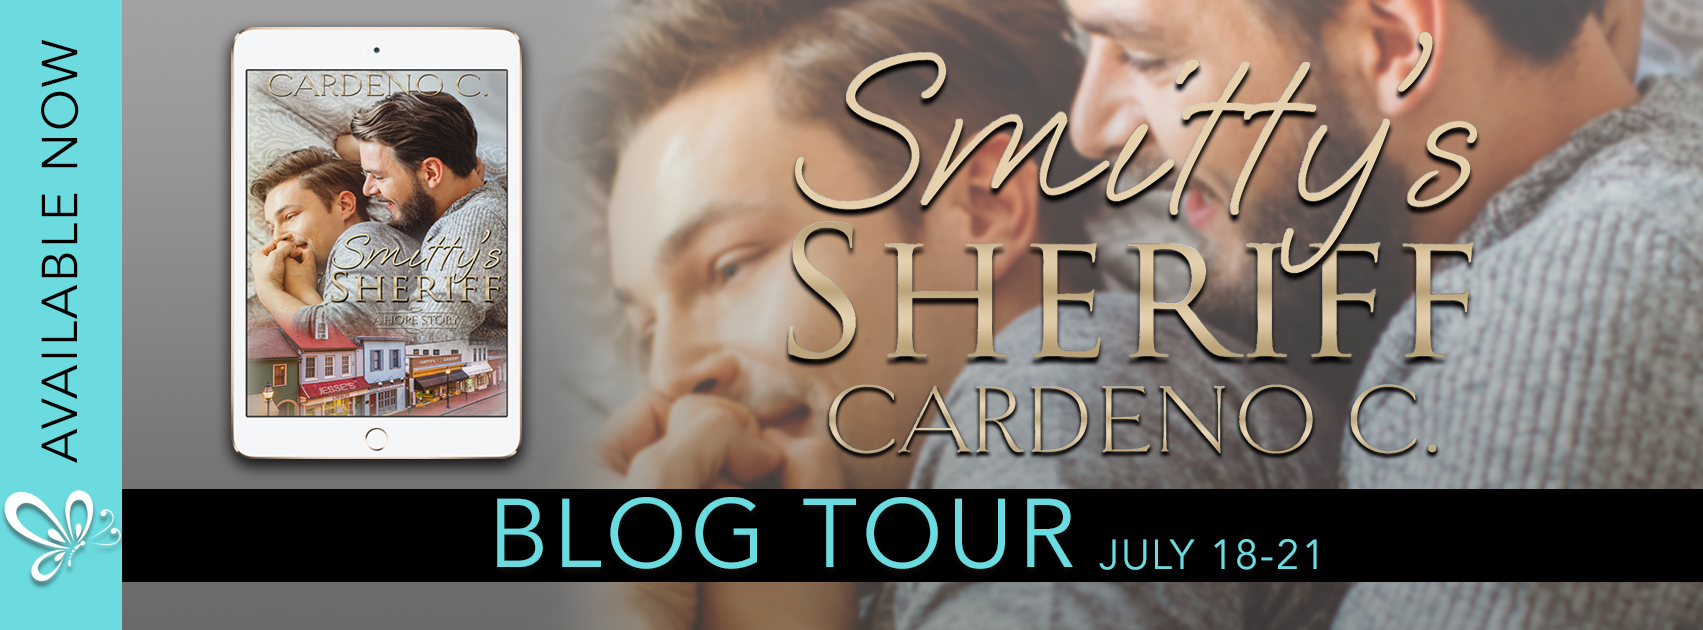 Blog Tour: Spotlight incl Exclusive Exerpt -- Cardeno C - Smitty's Sheriff